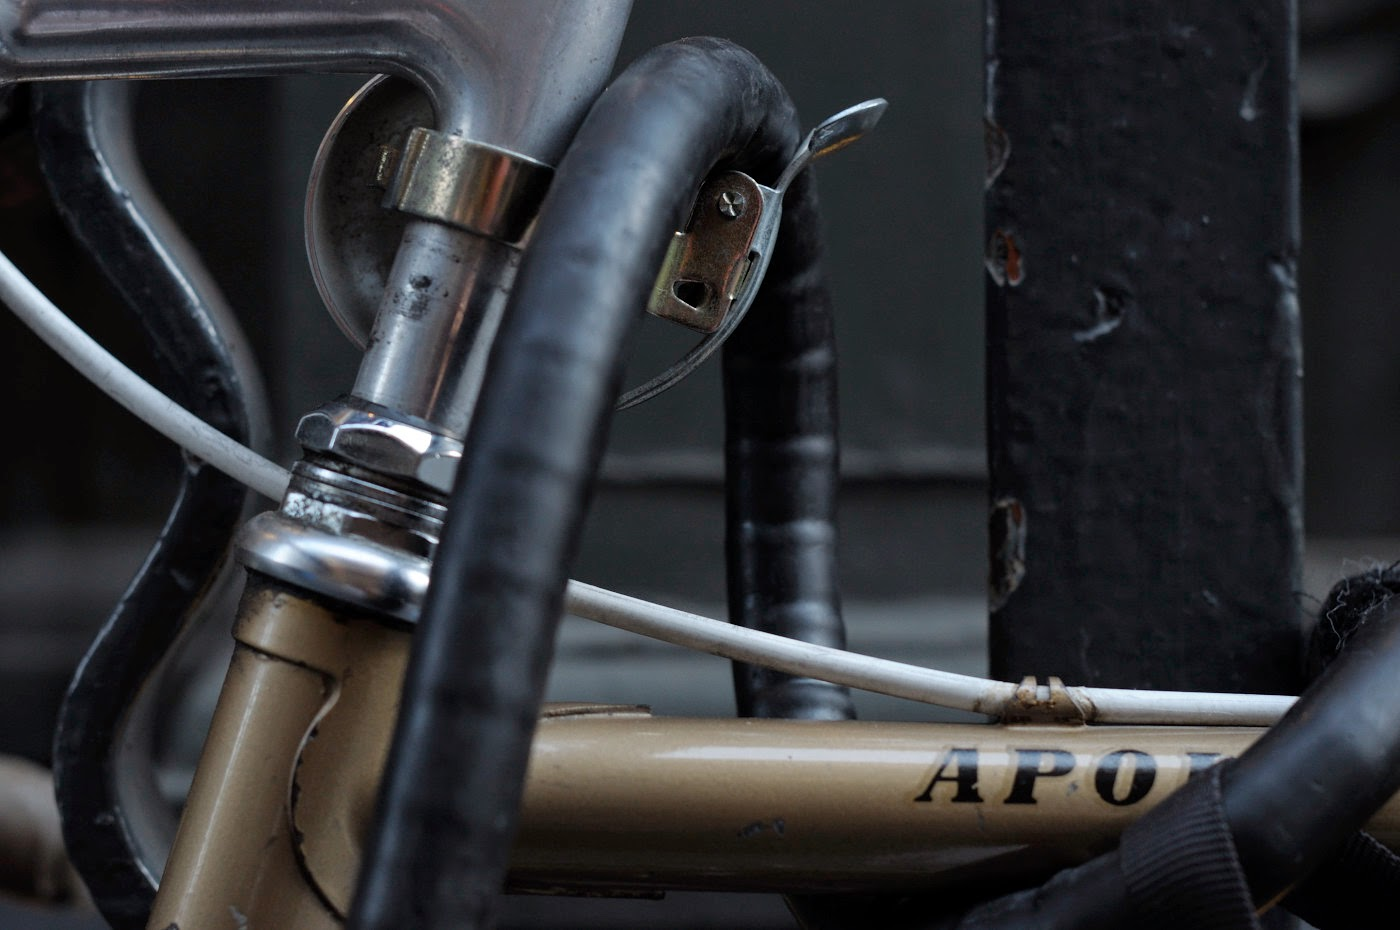 Bespoke, vintage, custom, Tim Macauley, The Biketorialist, The Light Monkey Collective, Melbourne, flinders lane, bicycle, road bike, Apollo, bike, setup, shimano, 600, groupset, decal, headset, sticker